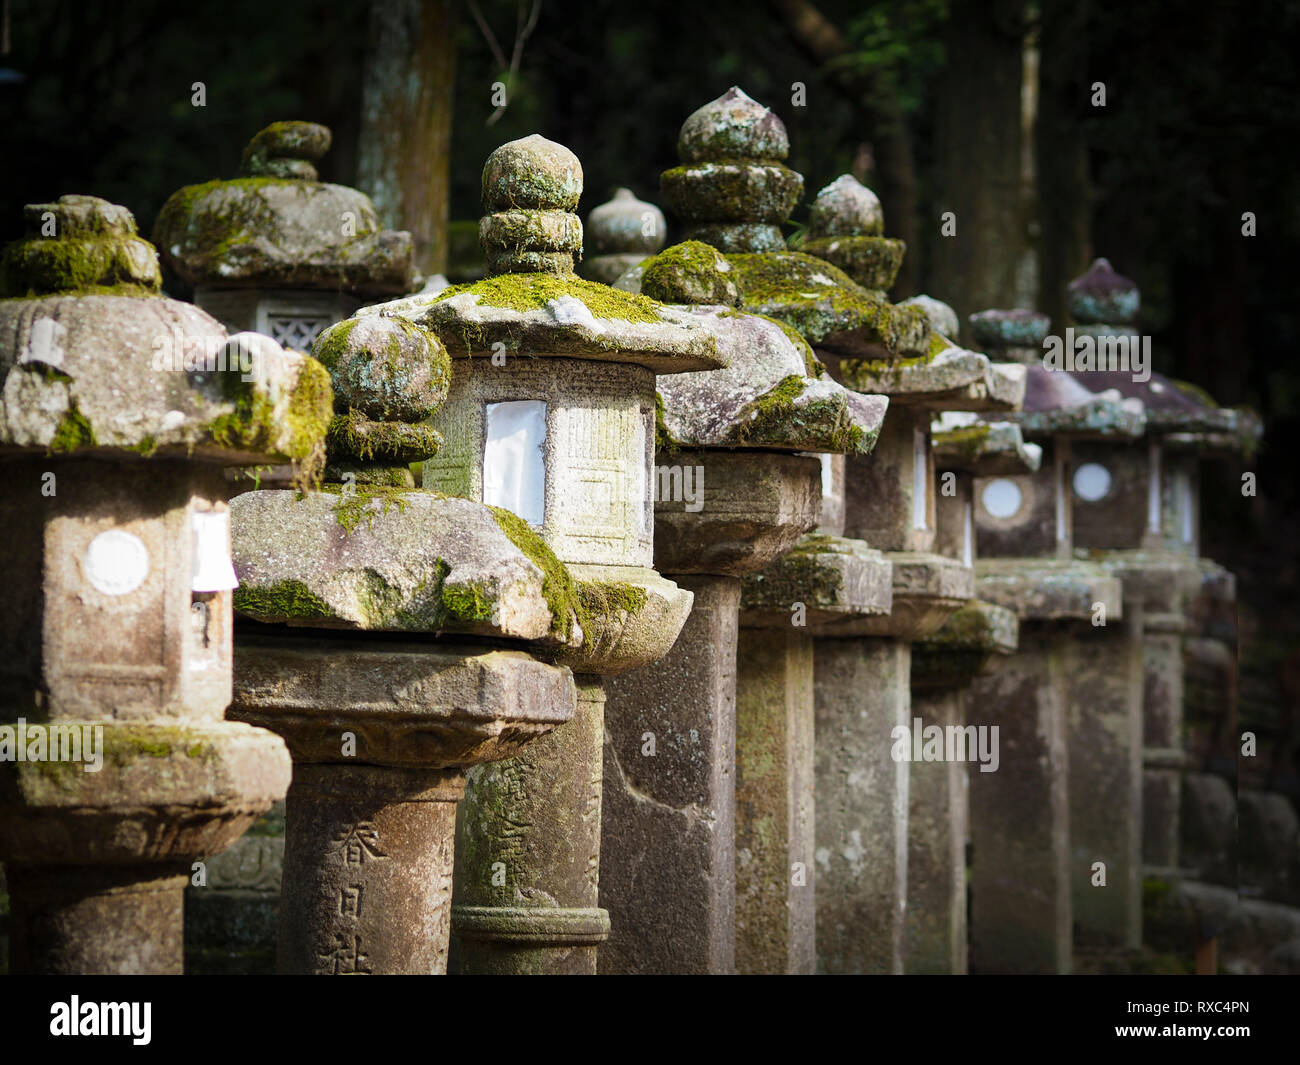 Nara, Japan - 15 Oct 2018: A row of weathered ancient stone structures near the Kasuga Grand Shrine at Nara, Japan - Stock Image